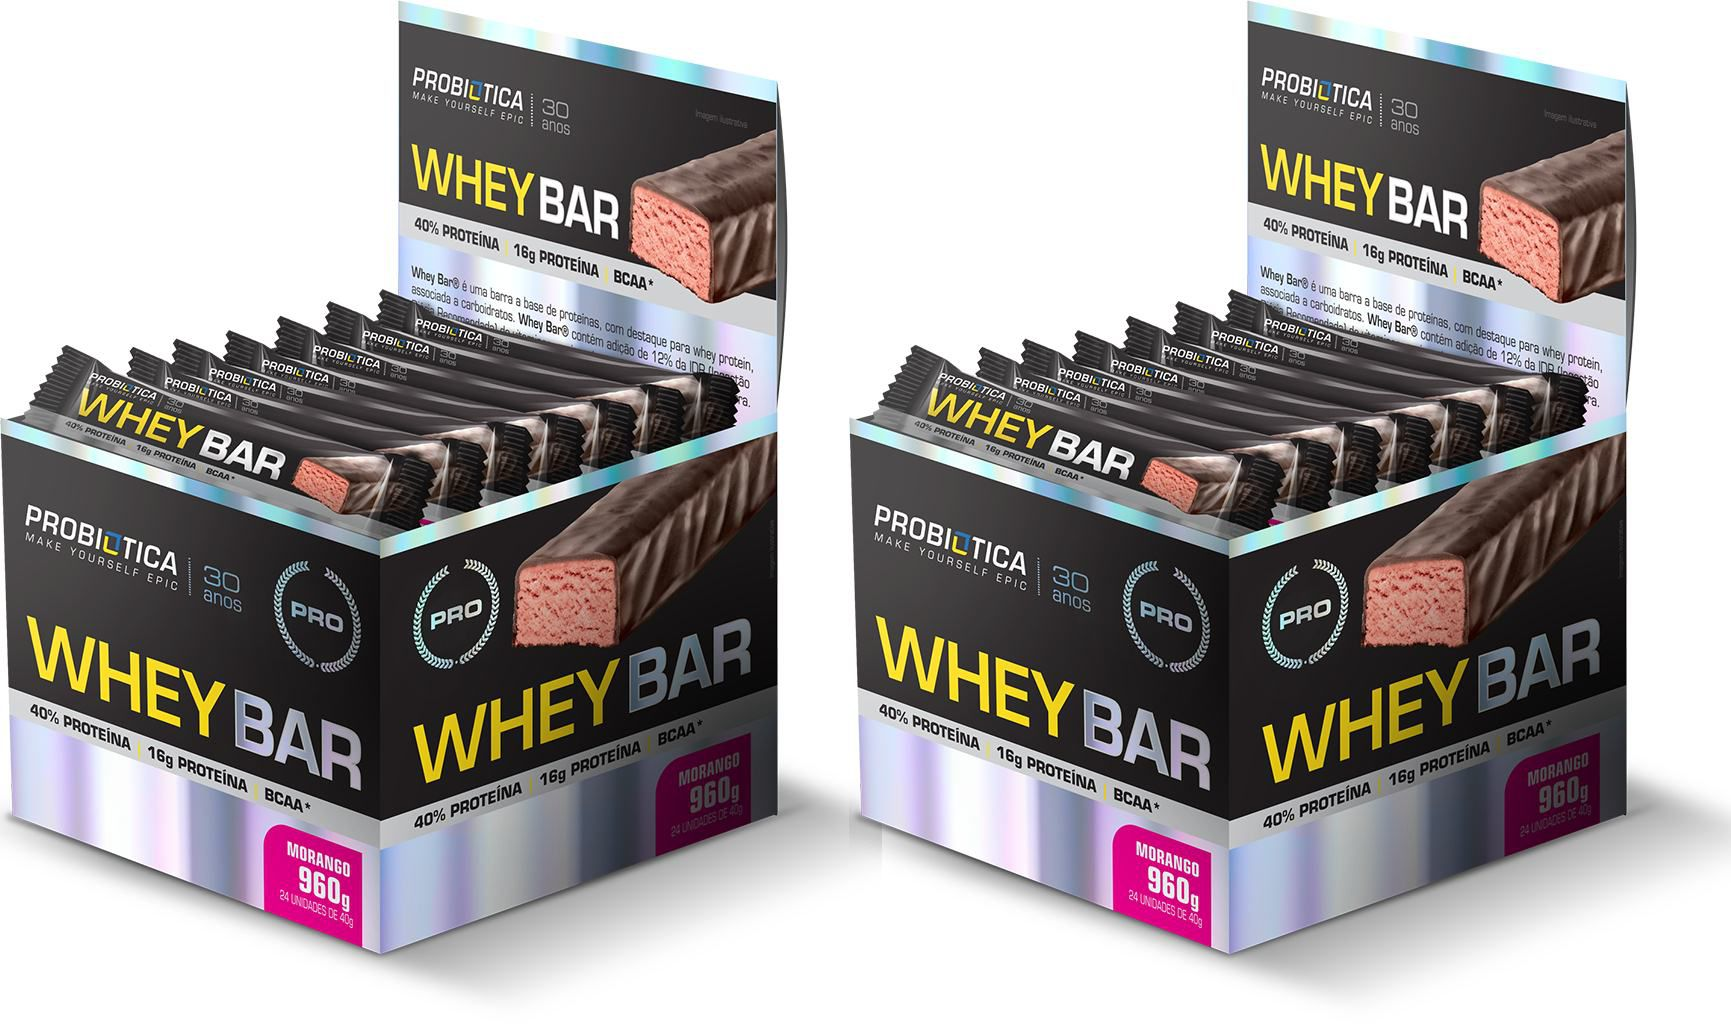 KIT: (48 Uni.) 2x Caixas Whey Bar - Probiotica